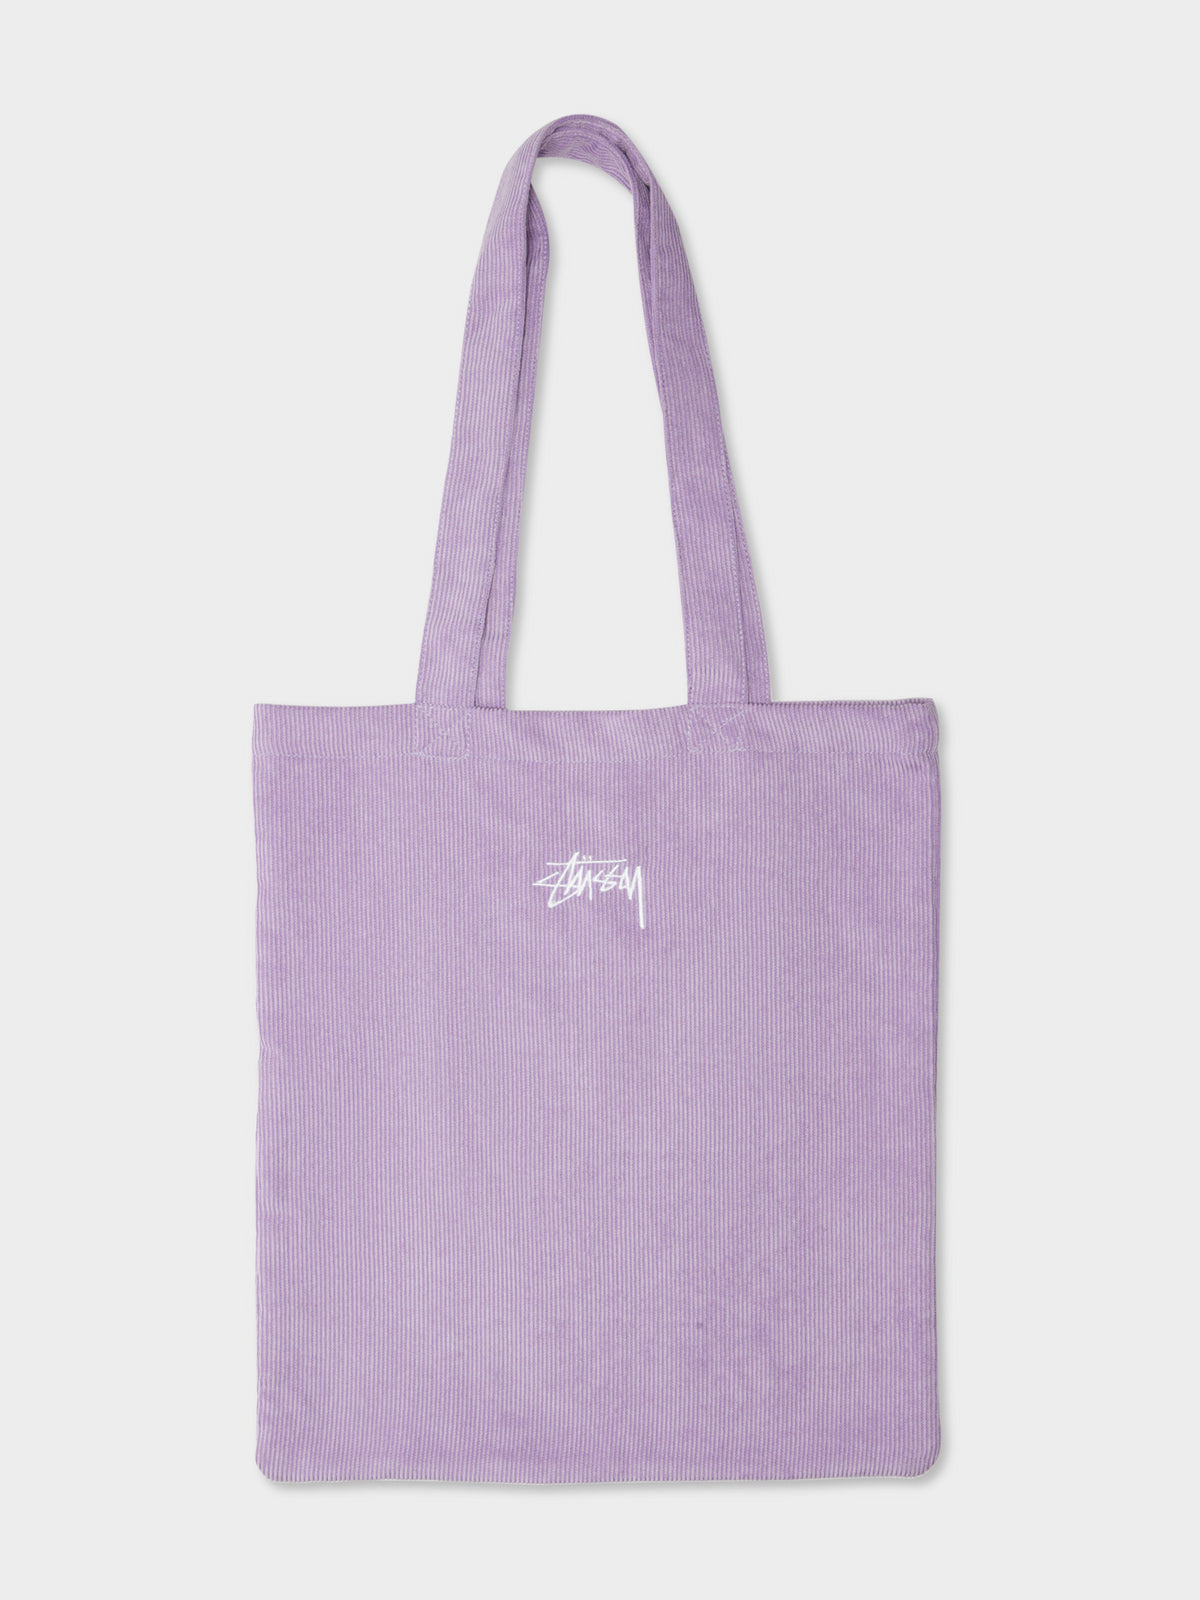 Logo Cord Tote Bag in Washed Purple Corduroy